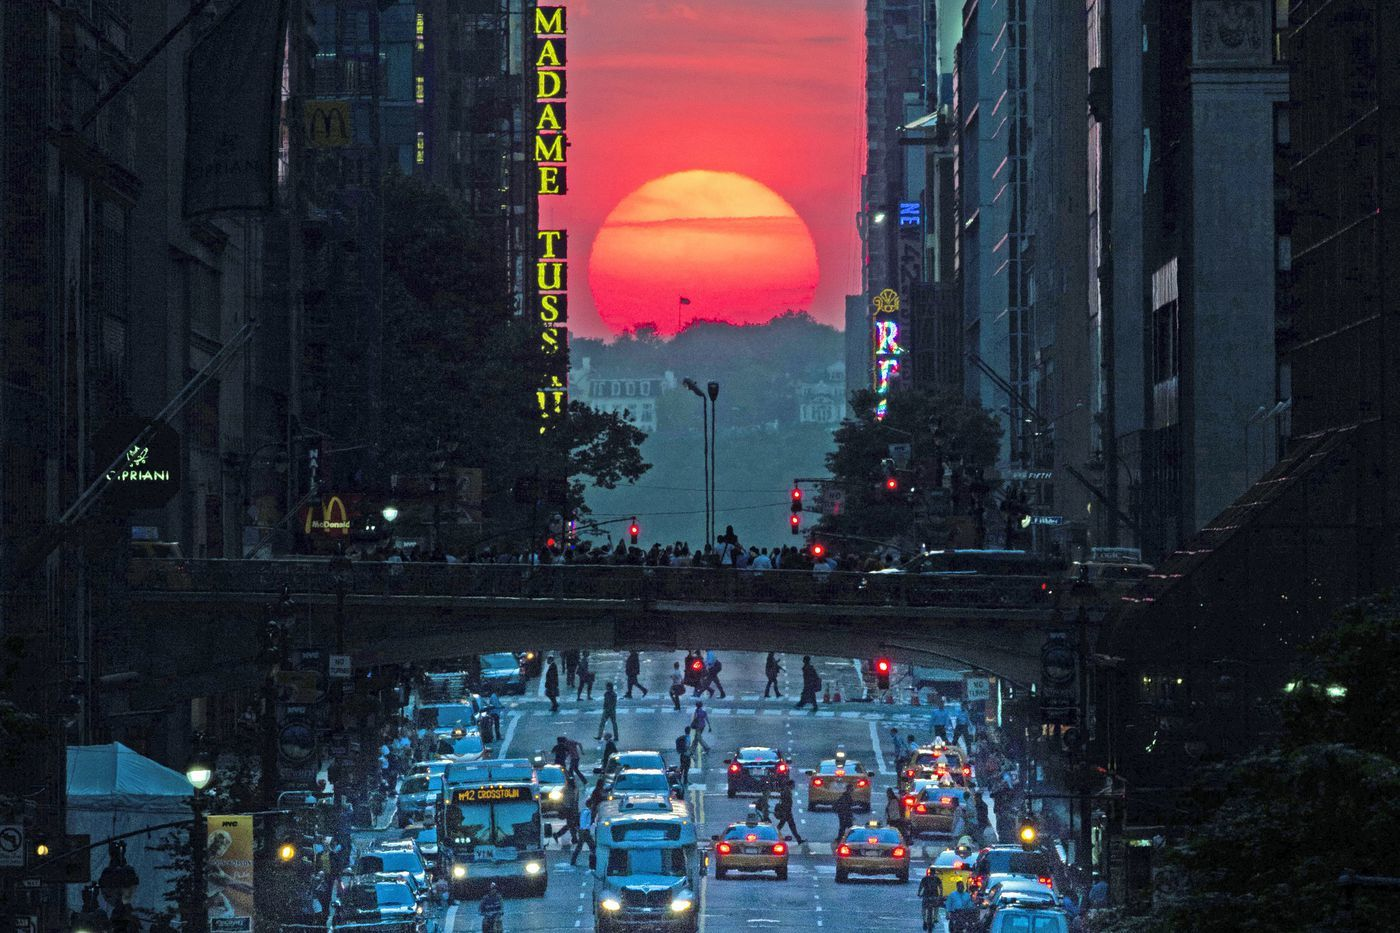 The iconic Manhattanhenge in its full glory,  photo from iidany